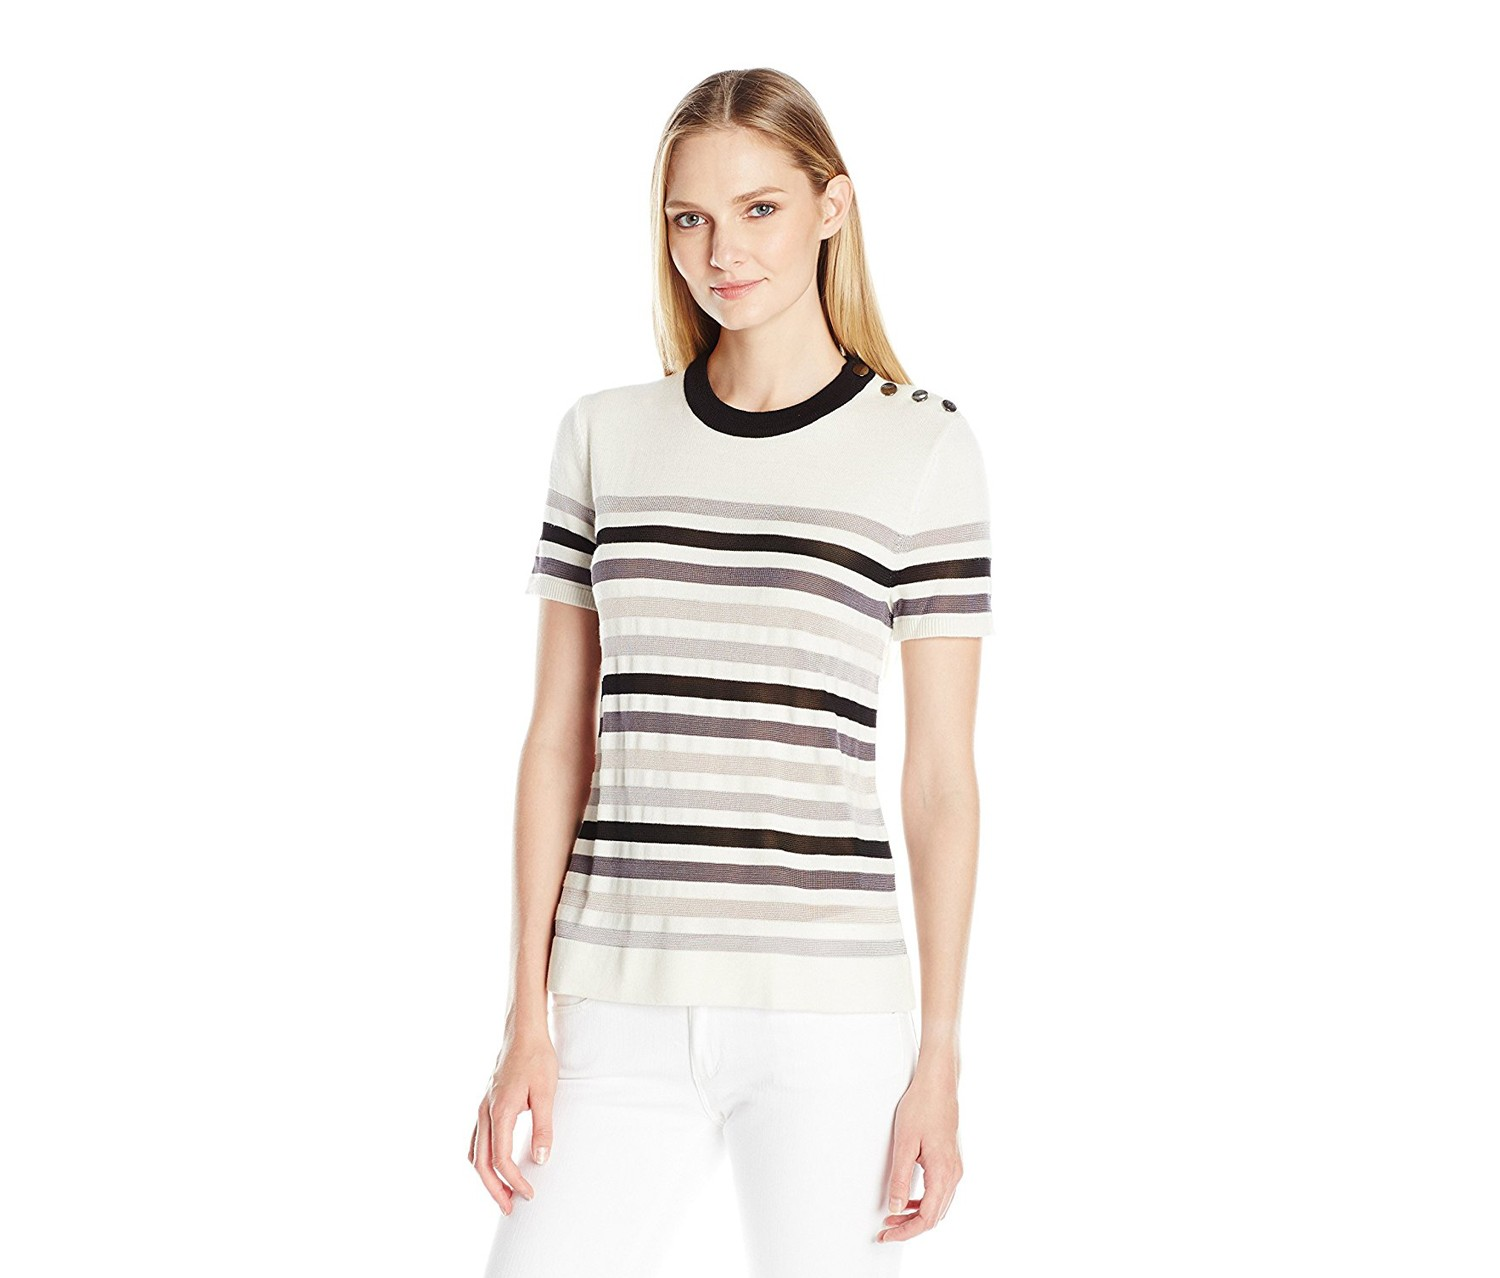 b0d56678a56 Shop Anne Klein Women's Stripe Short Sleeve Sweater Tee, Black Combo ...